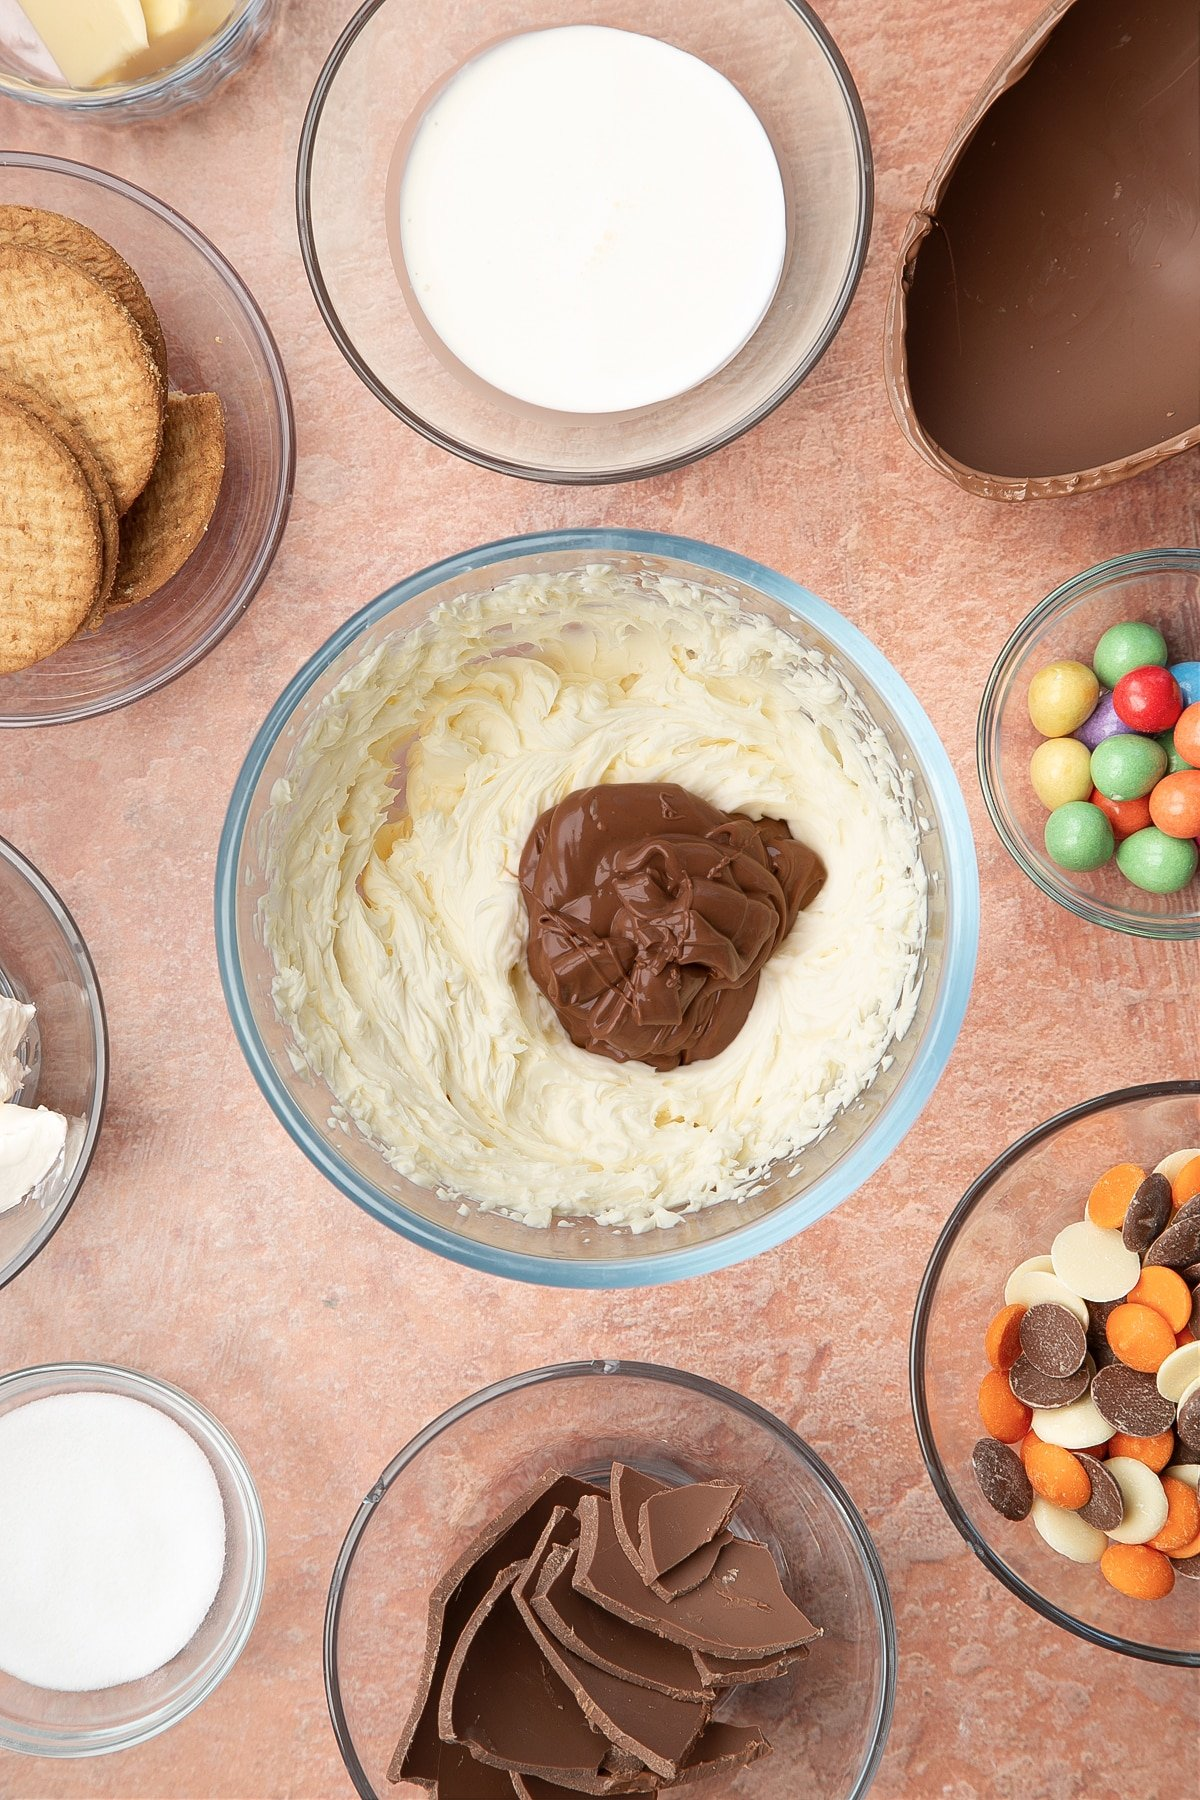 A glass bowl containing cream cheese, double cream and sugar whisked together with melted chocolate. The bowl is surrounded by ingredients to make Easter Egg cheesecake.